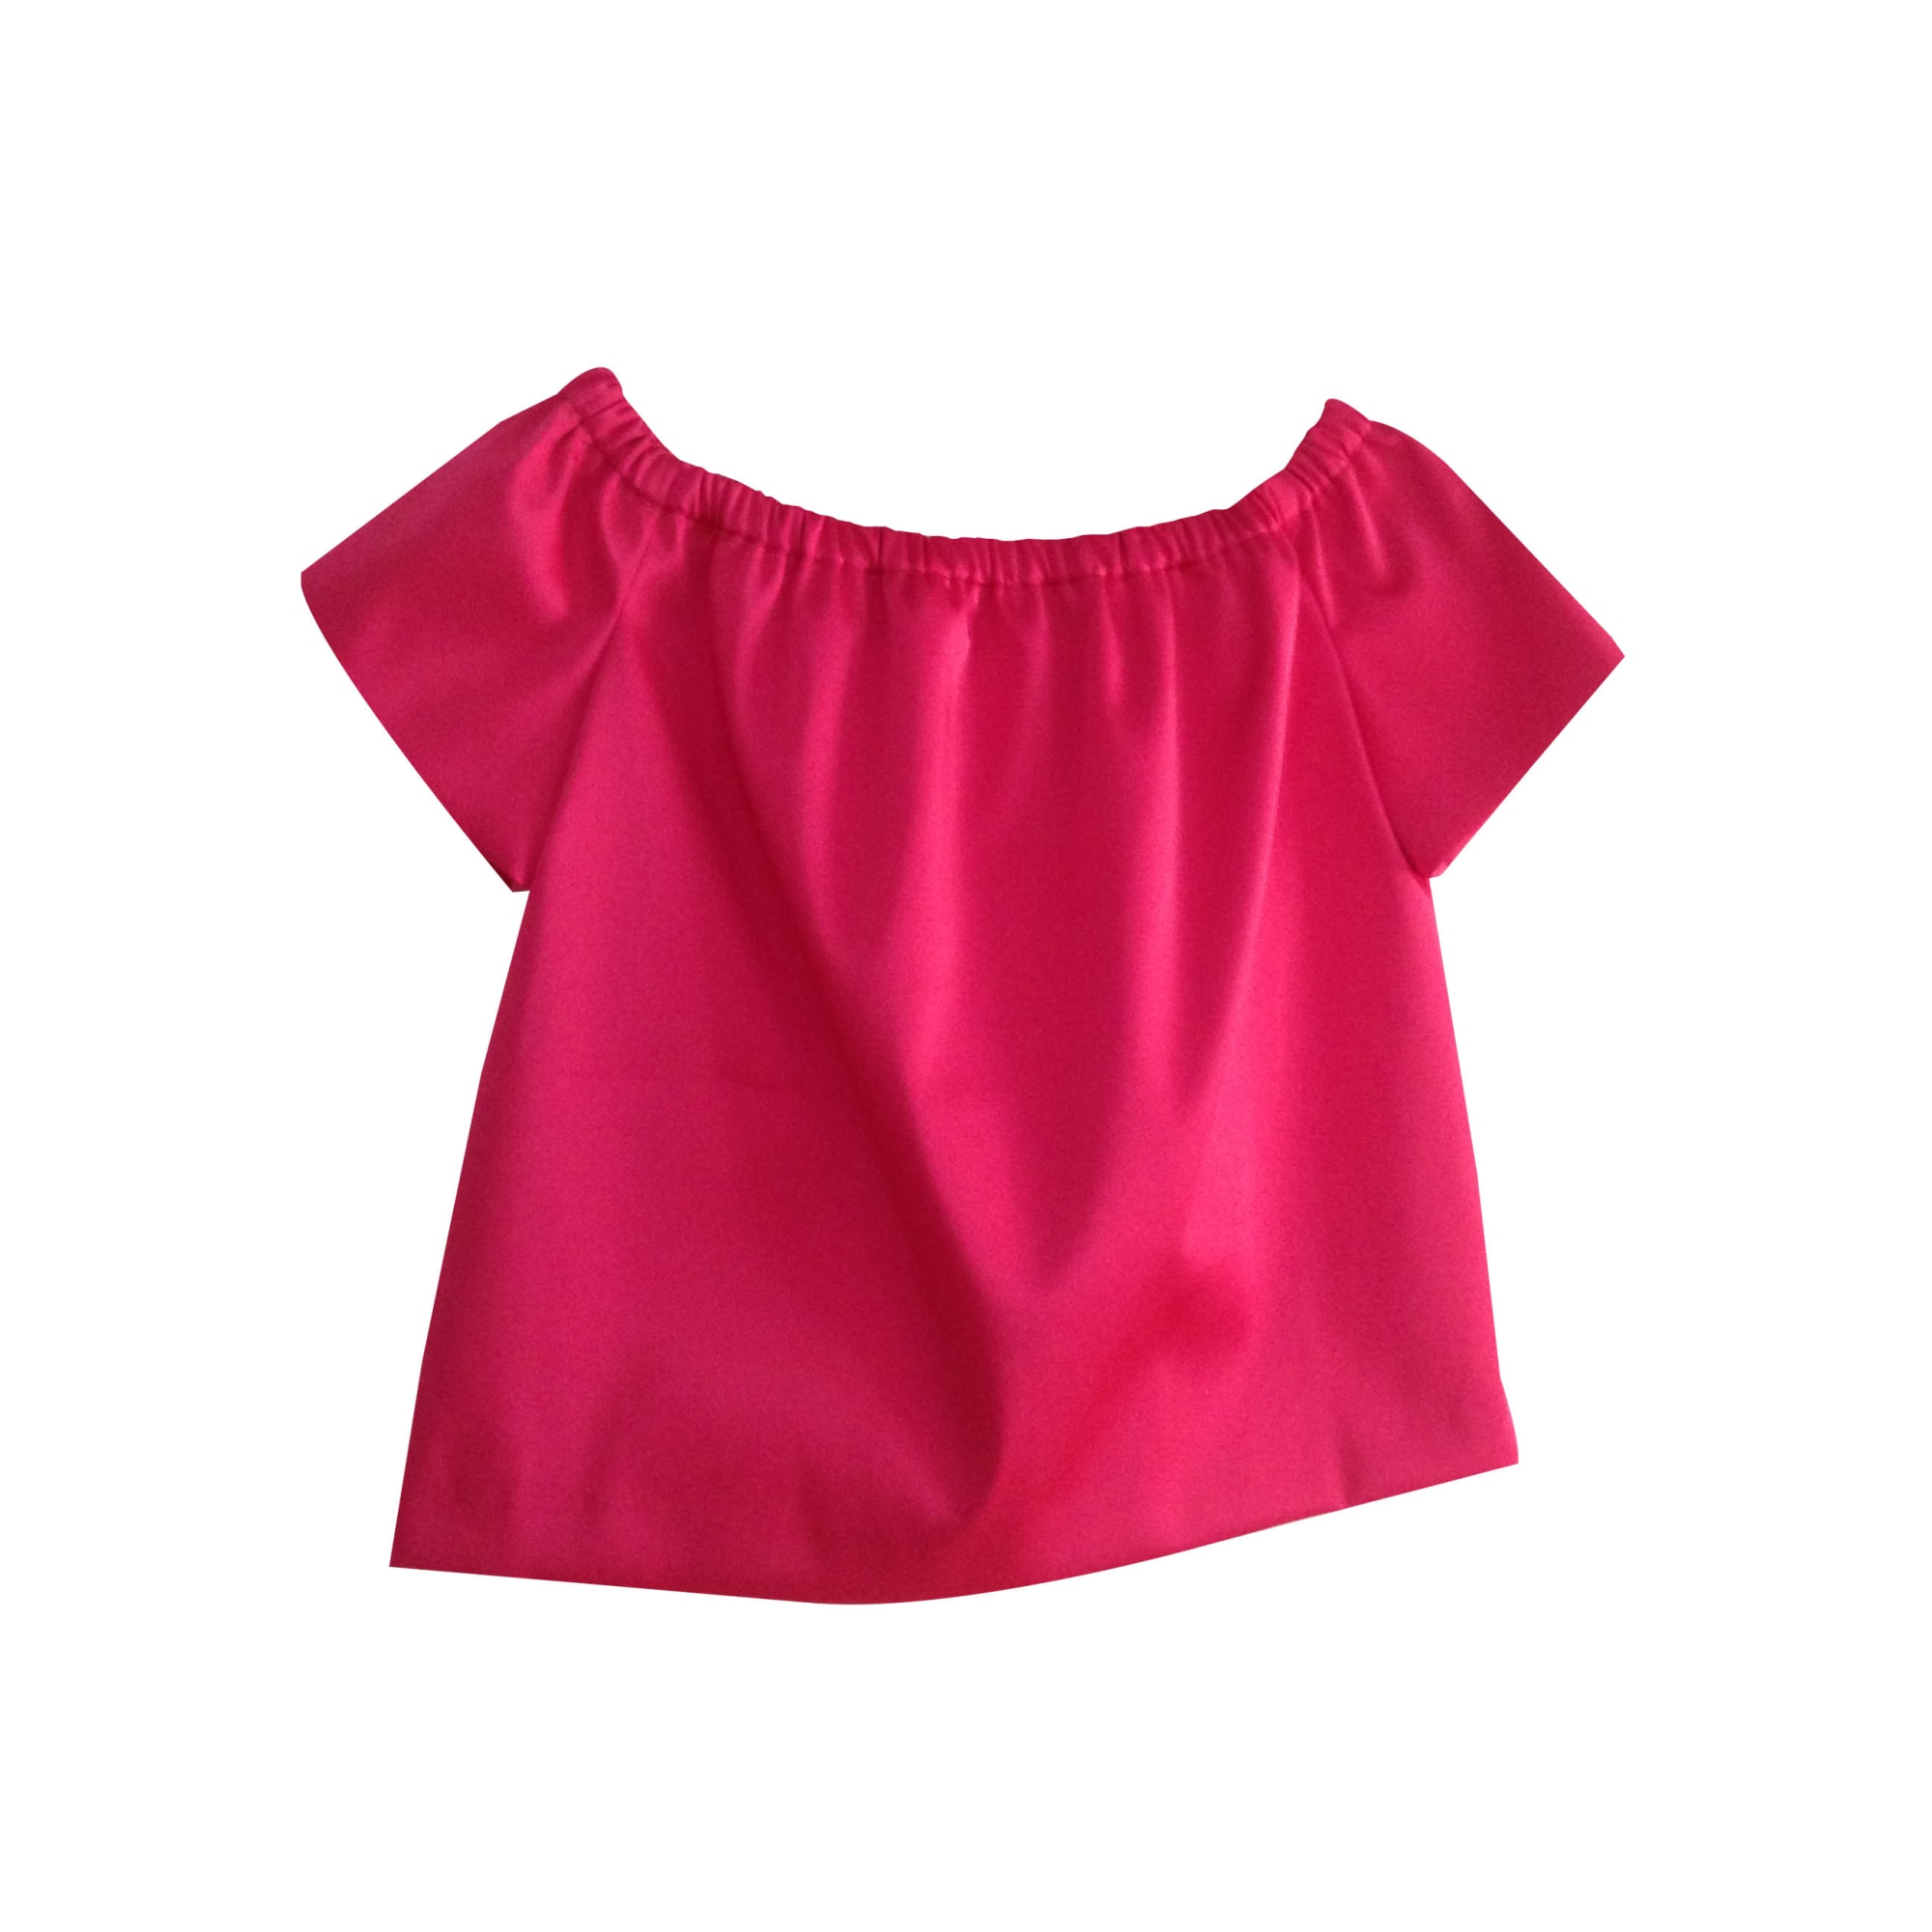 Blouse MAJE Pink, fuchsia, light pink